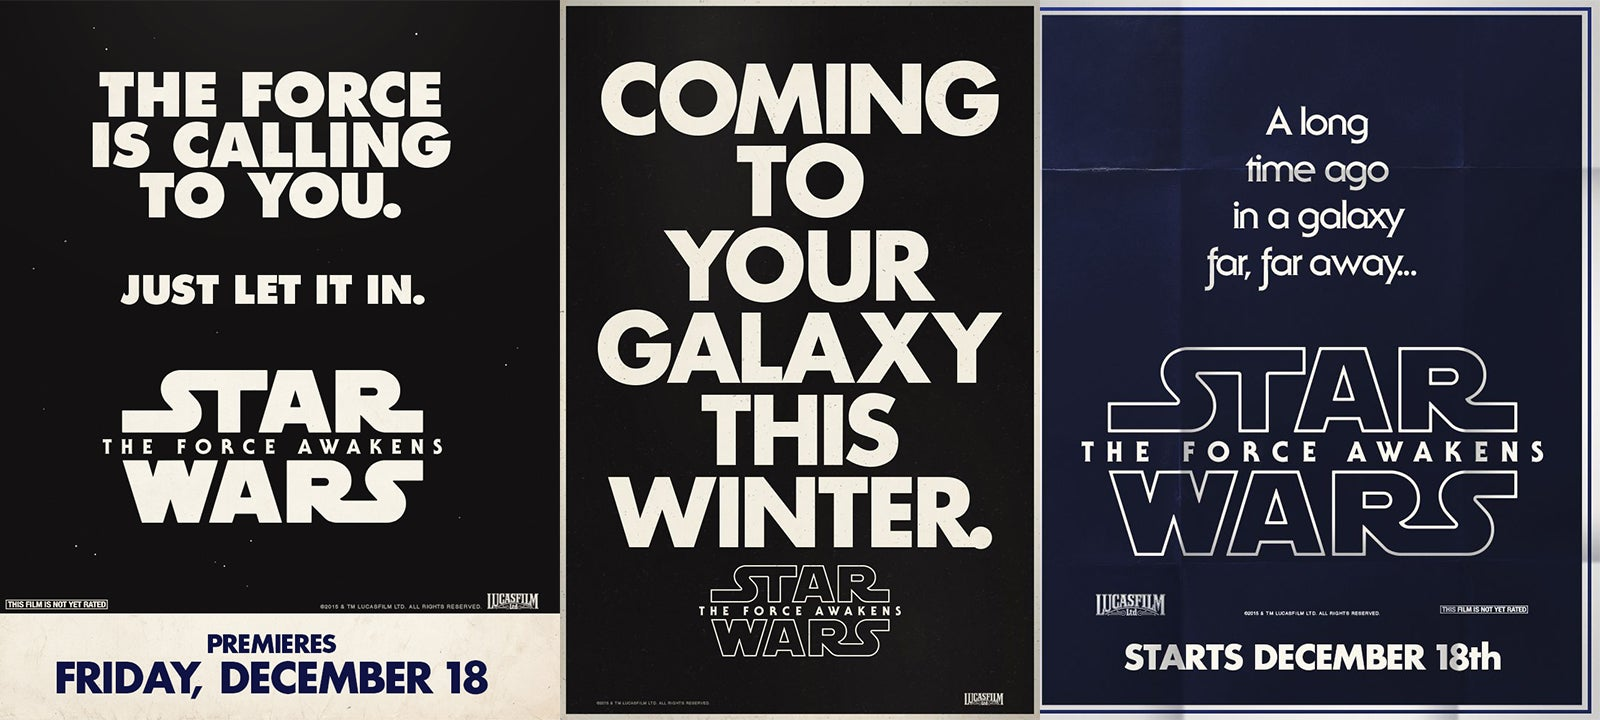 Retro-Style Ads For The Force Awakens Dials the Hype Up to 11